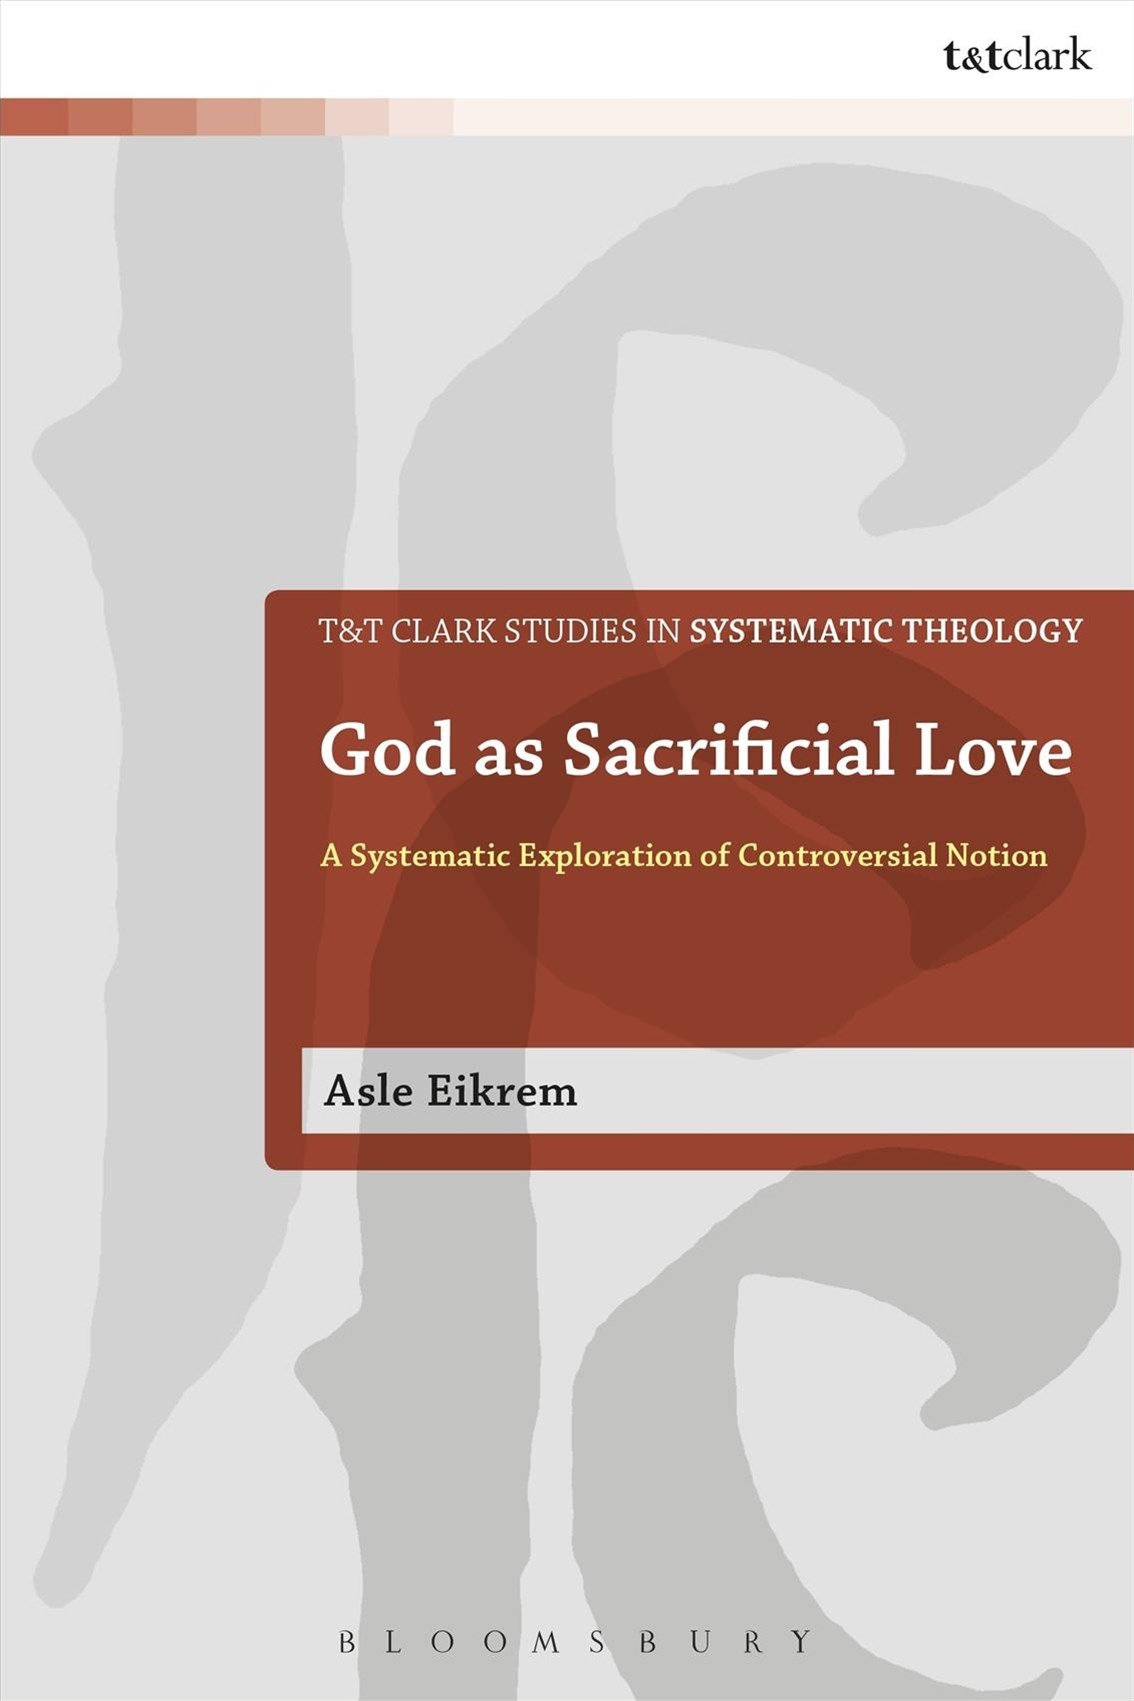 God as Sacrificial Love